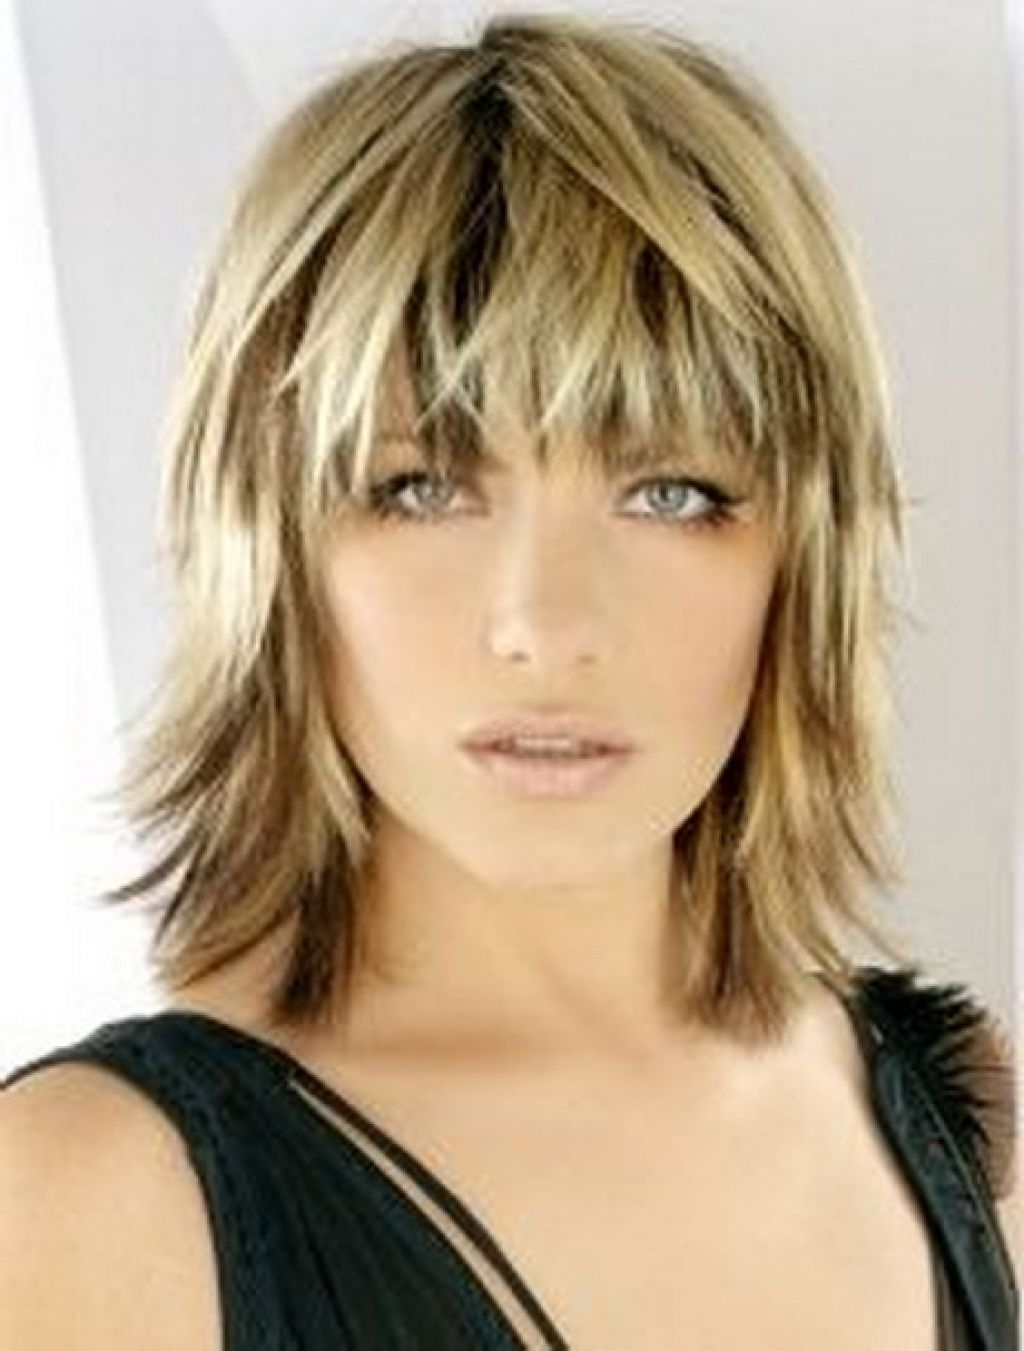 Well Liked Layered Shaggy Bob Hairstyles For Medium Length Layered Haircut With Bangs – Hairstyle For Women & Man (View 14 of 15)